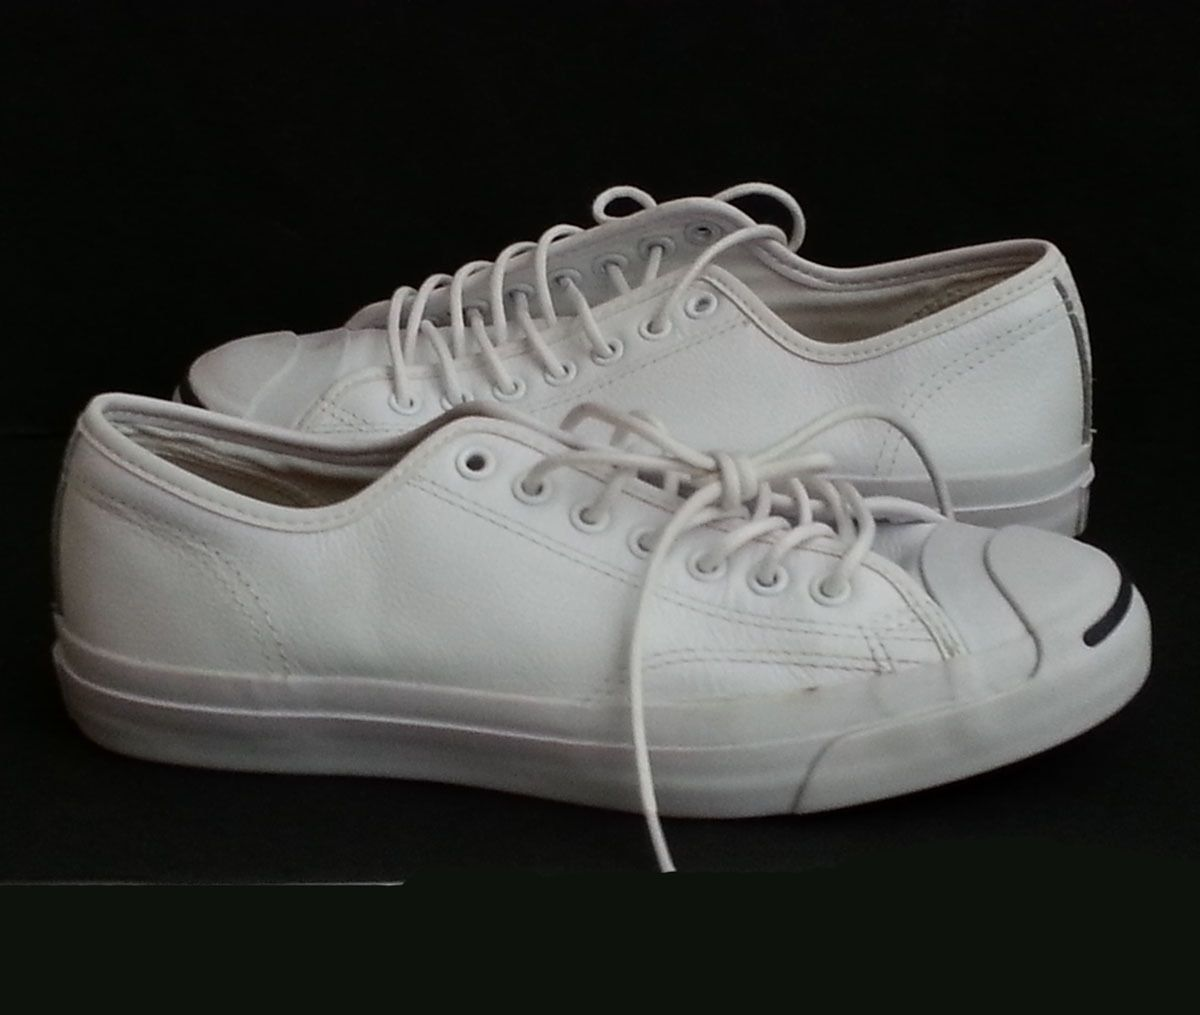 #ebay Converse Jack Purcell leather White Sneakers Unisex men size 8 women  size 9.5 withing